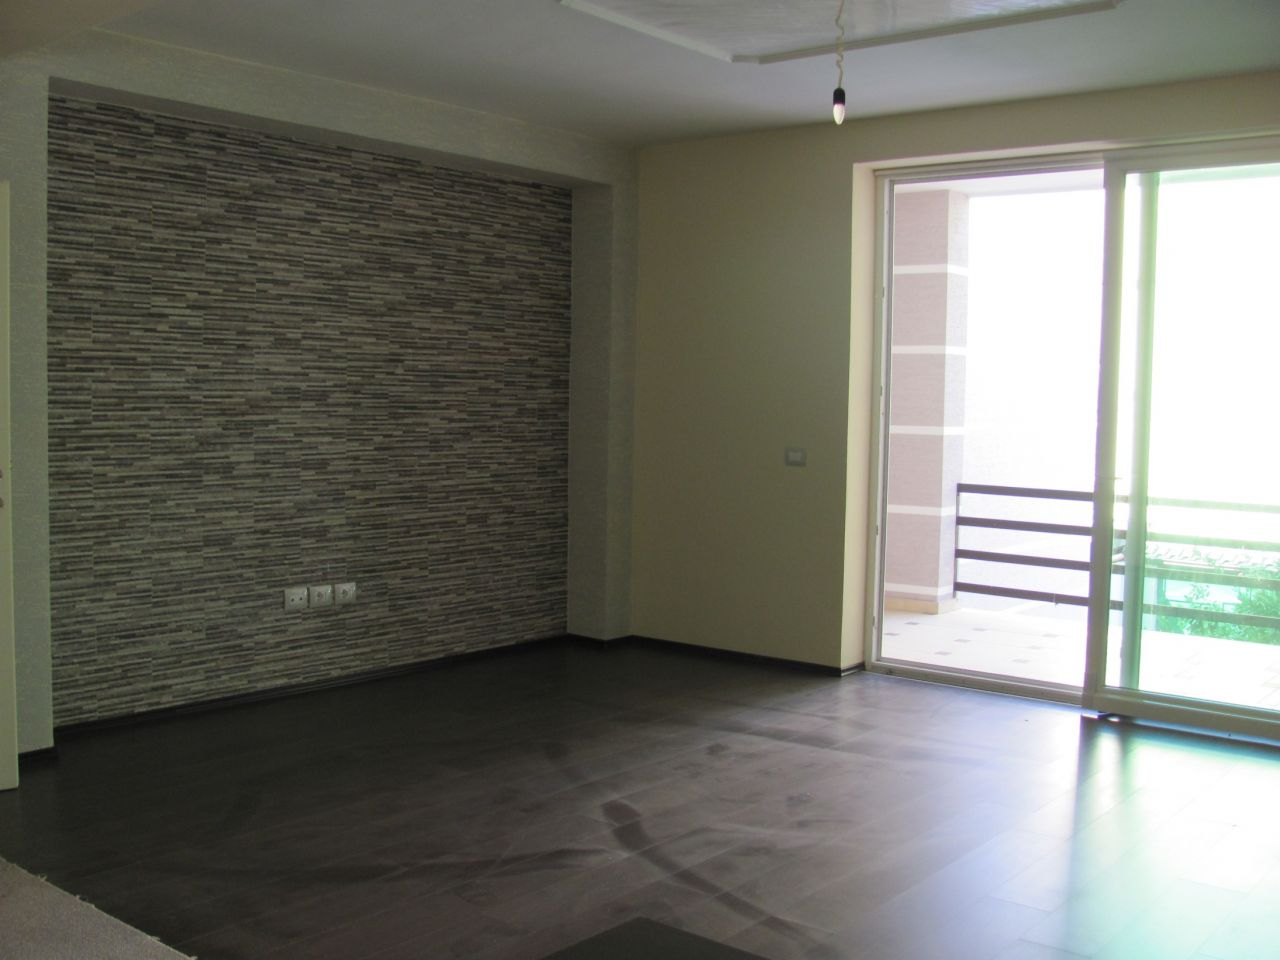 Villa for Rent in Tirana, Albania. The villa has two floors and is in very good conditions.